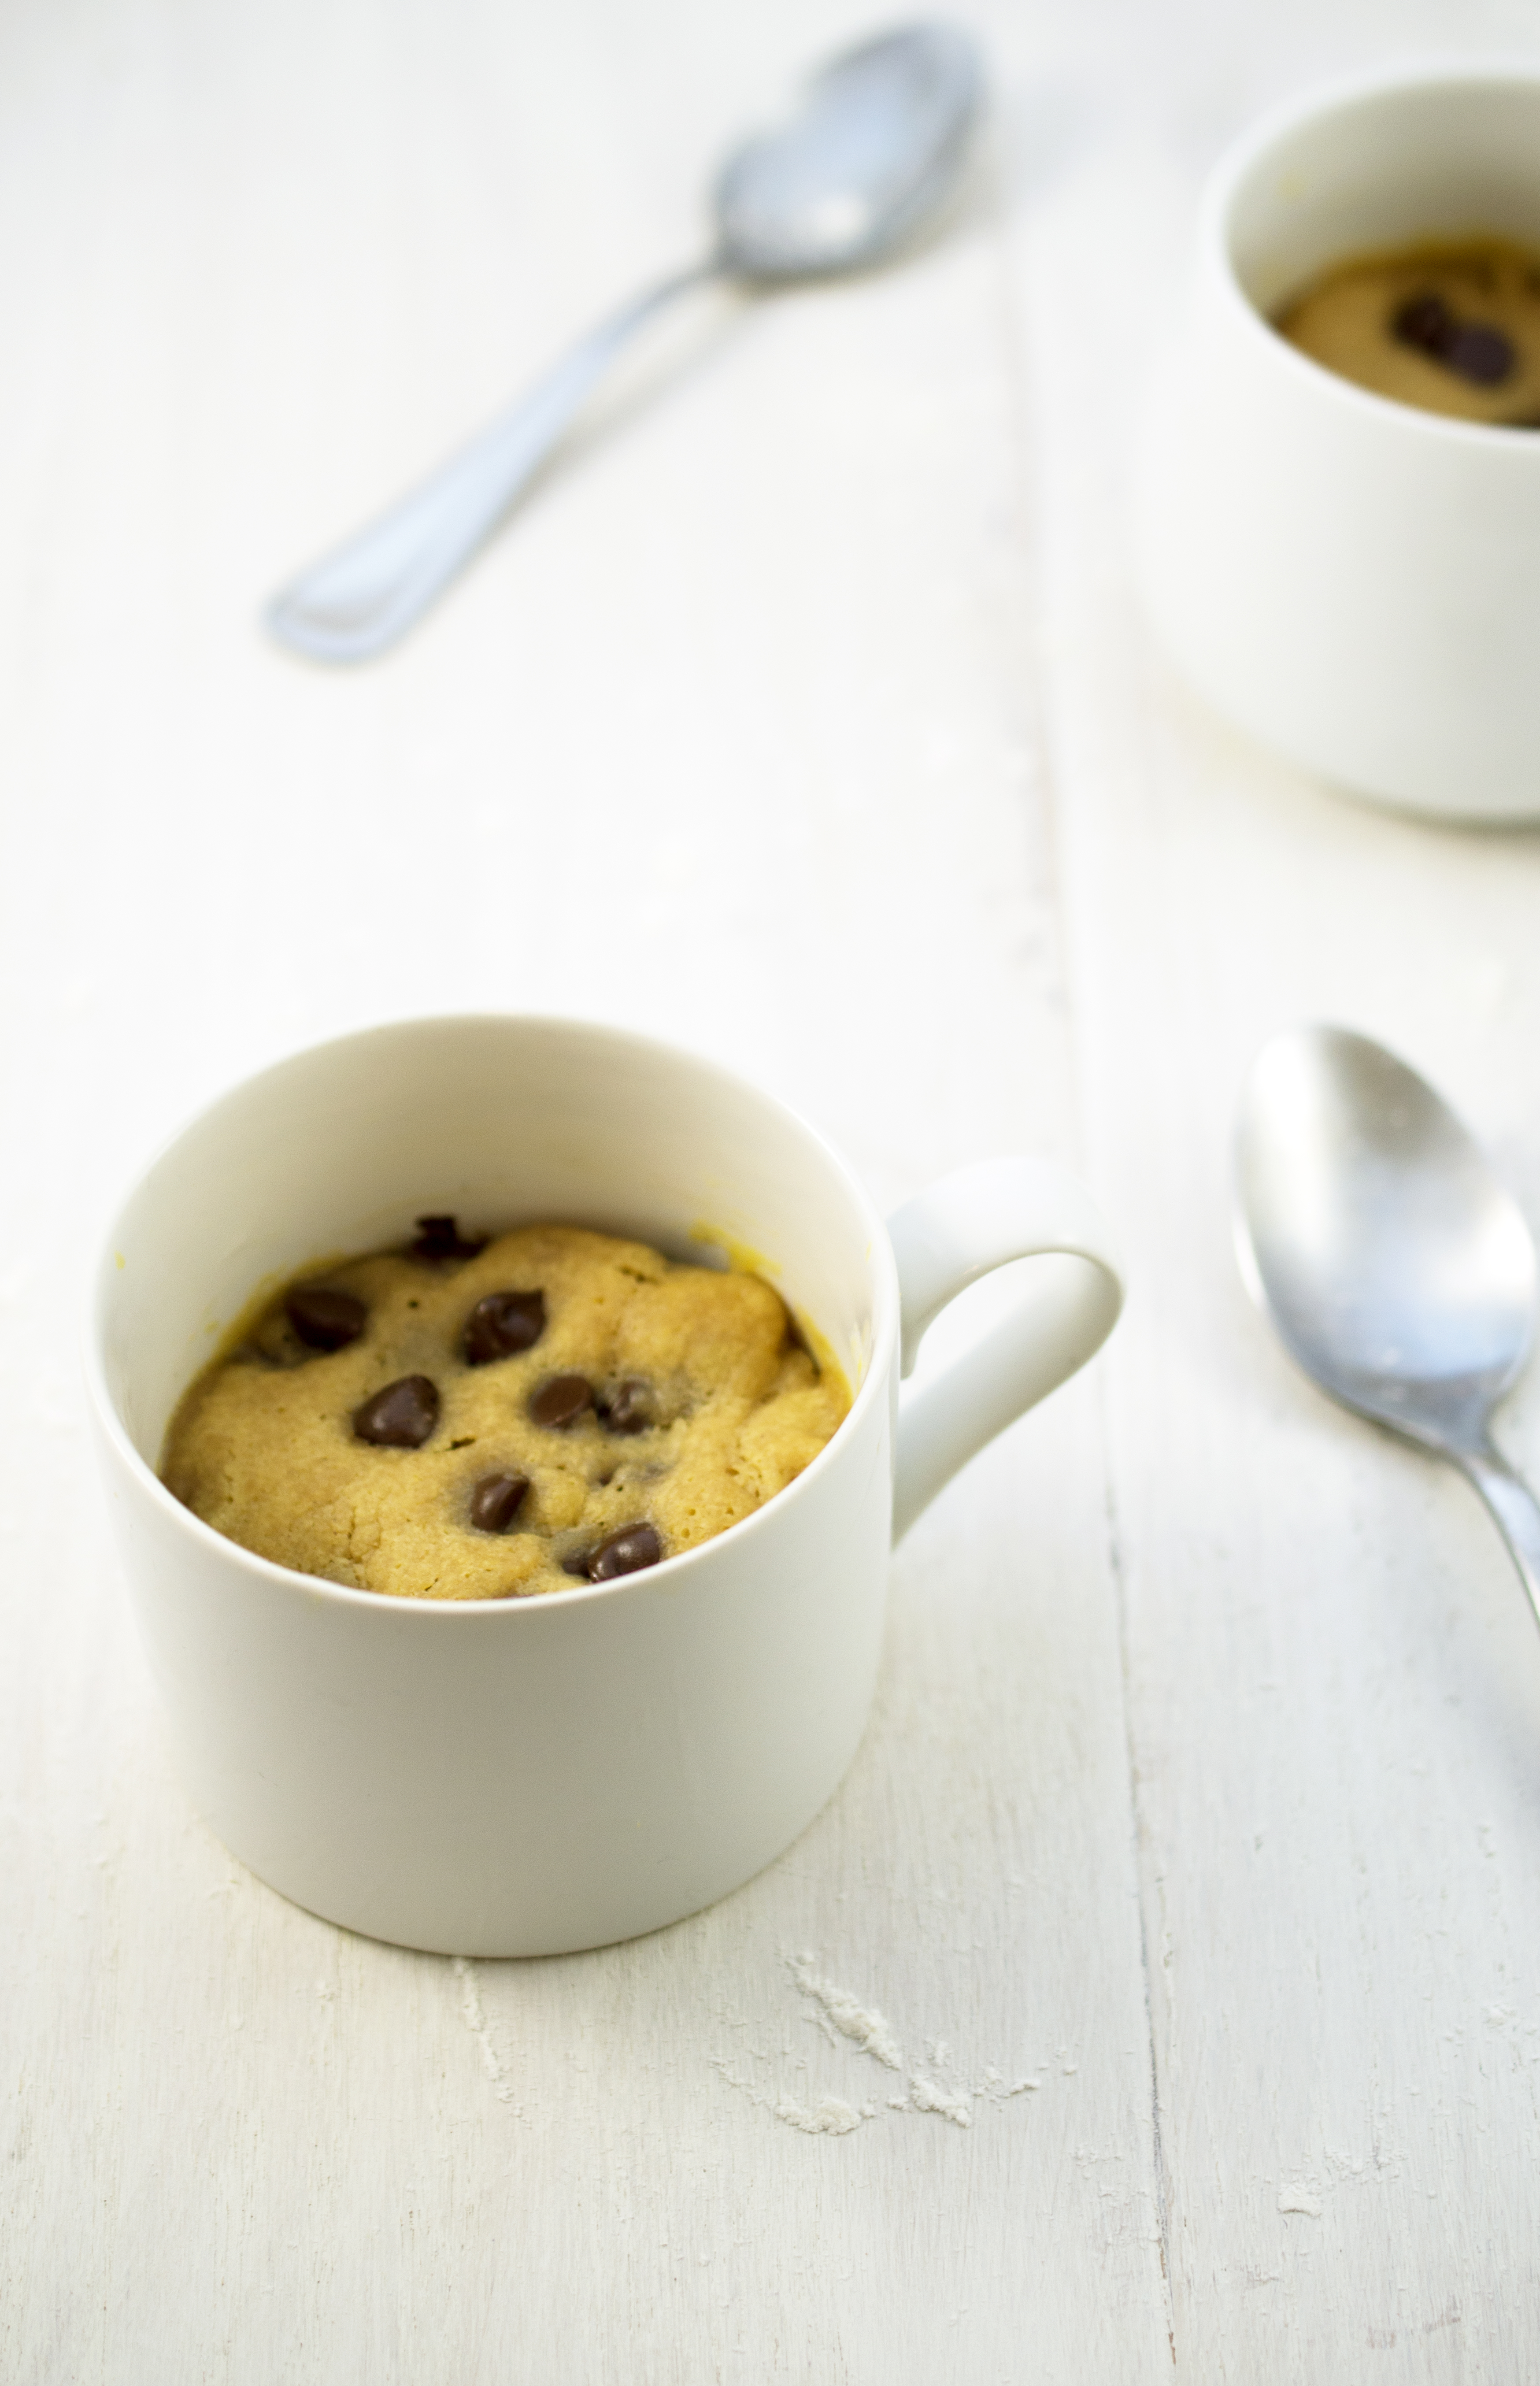 Peanut Butter and Chocolate Chip Mug Cookie